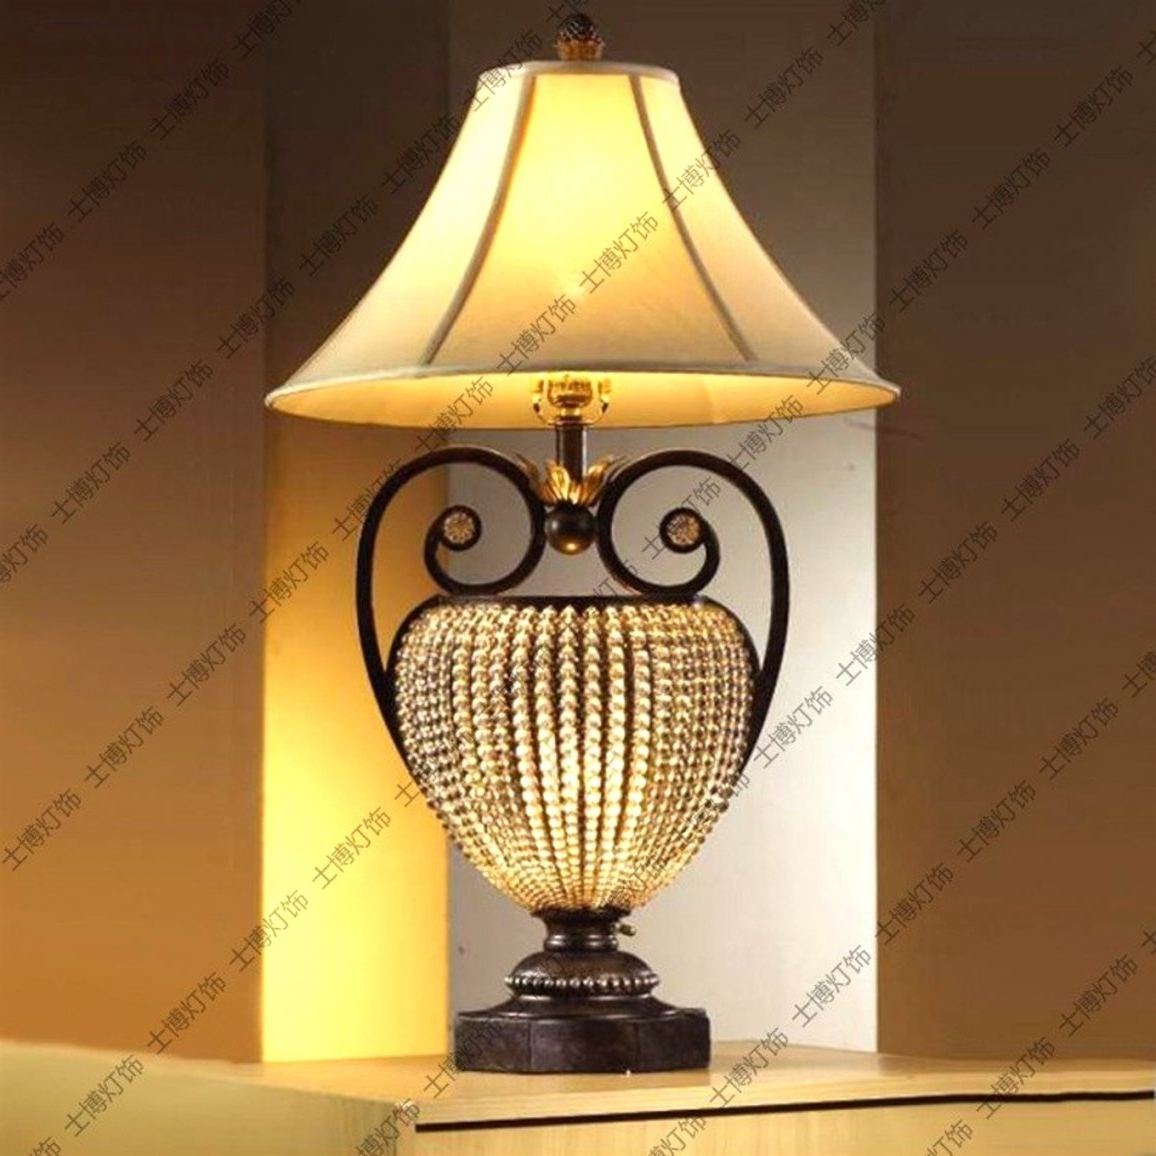 Widely Used Traditional Living Room Table Lamps Pertaining To Furniture : Livingroom Traditional Table Lamps For Living Room (View 7 of 20)